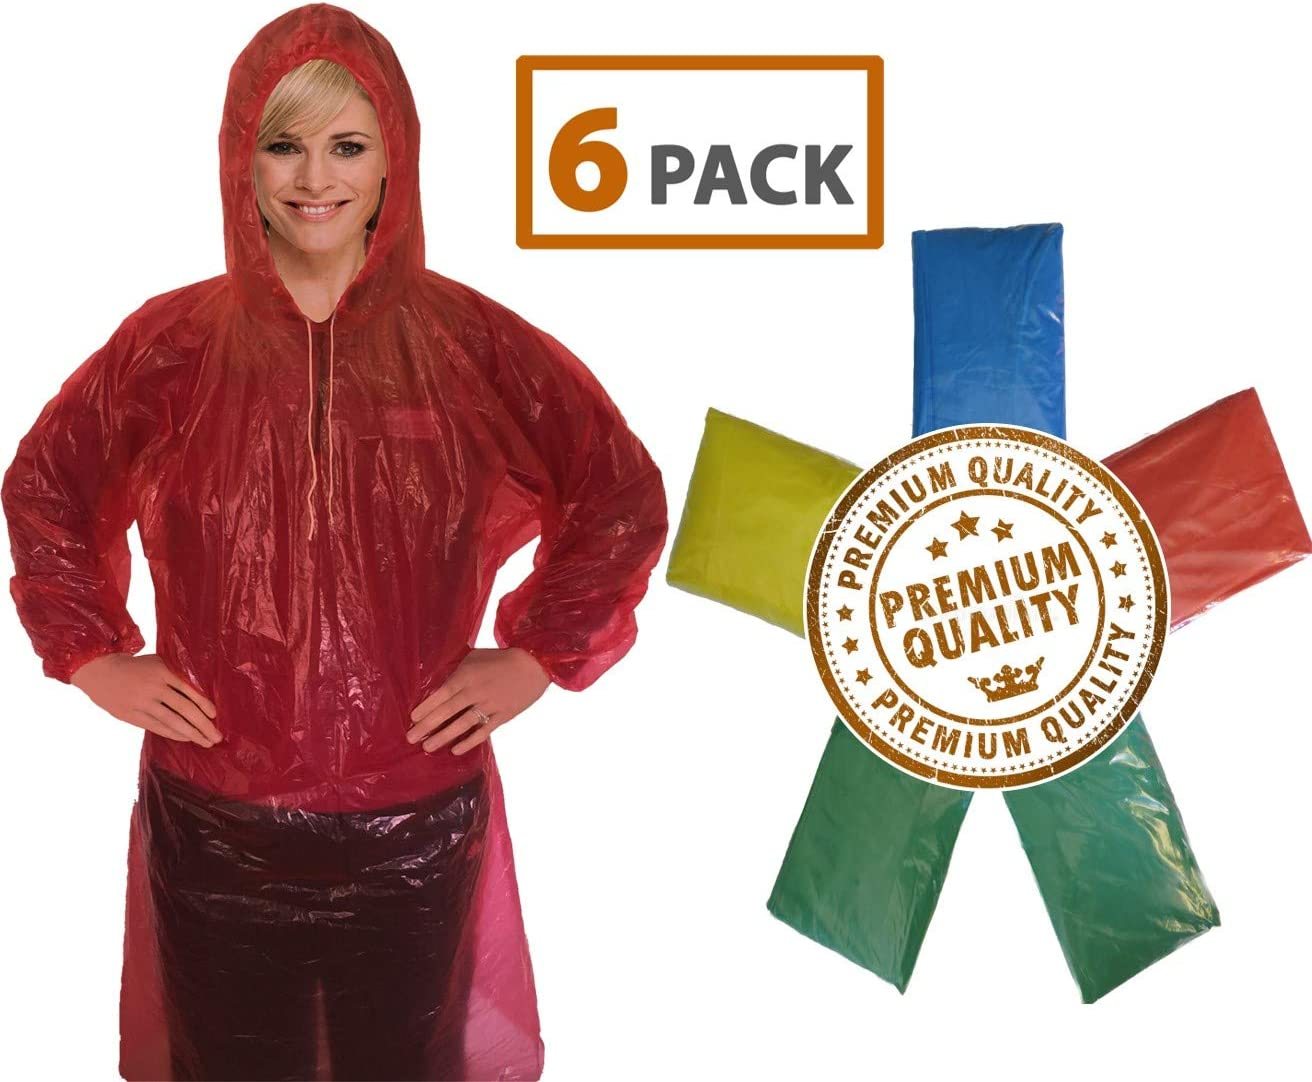 White, X-Large FEDULK Disposable Rain Ponchos Clothing Suit Anti-Oil Stain Waterproof Outdoor Emergency Antistatic Raincoat Gown Robes